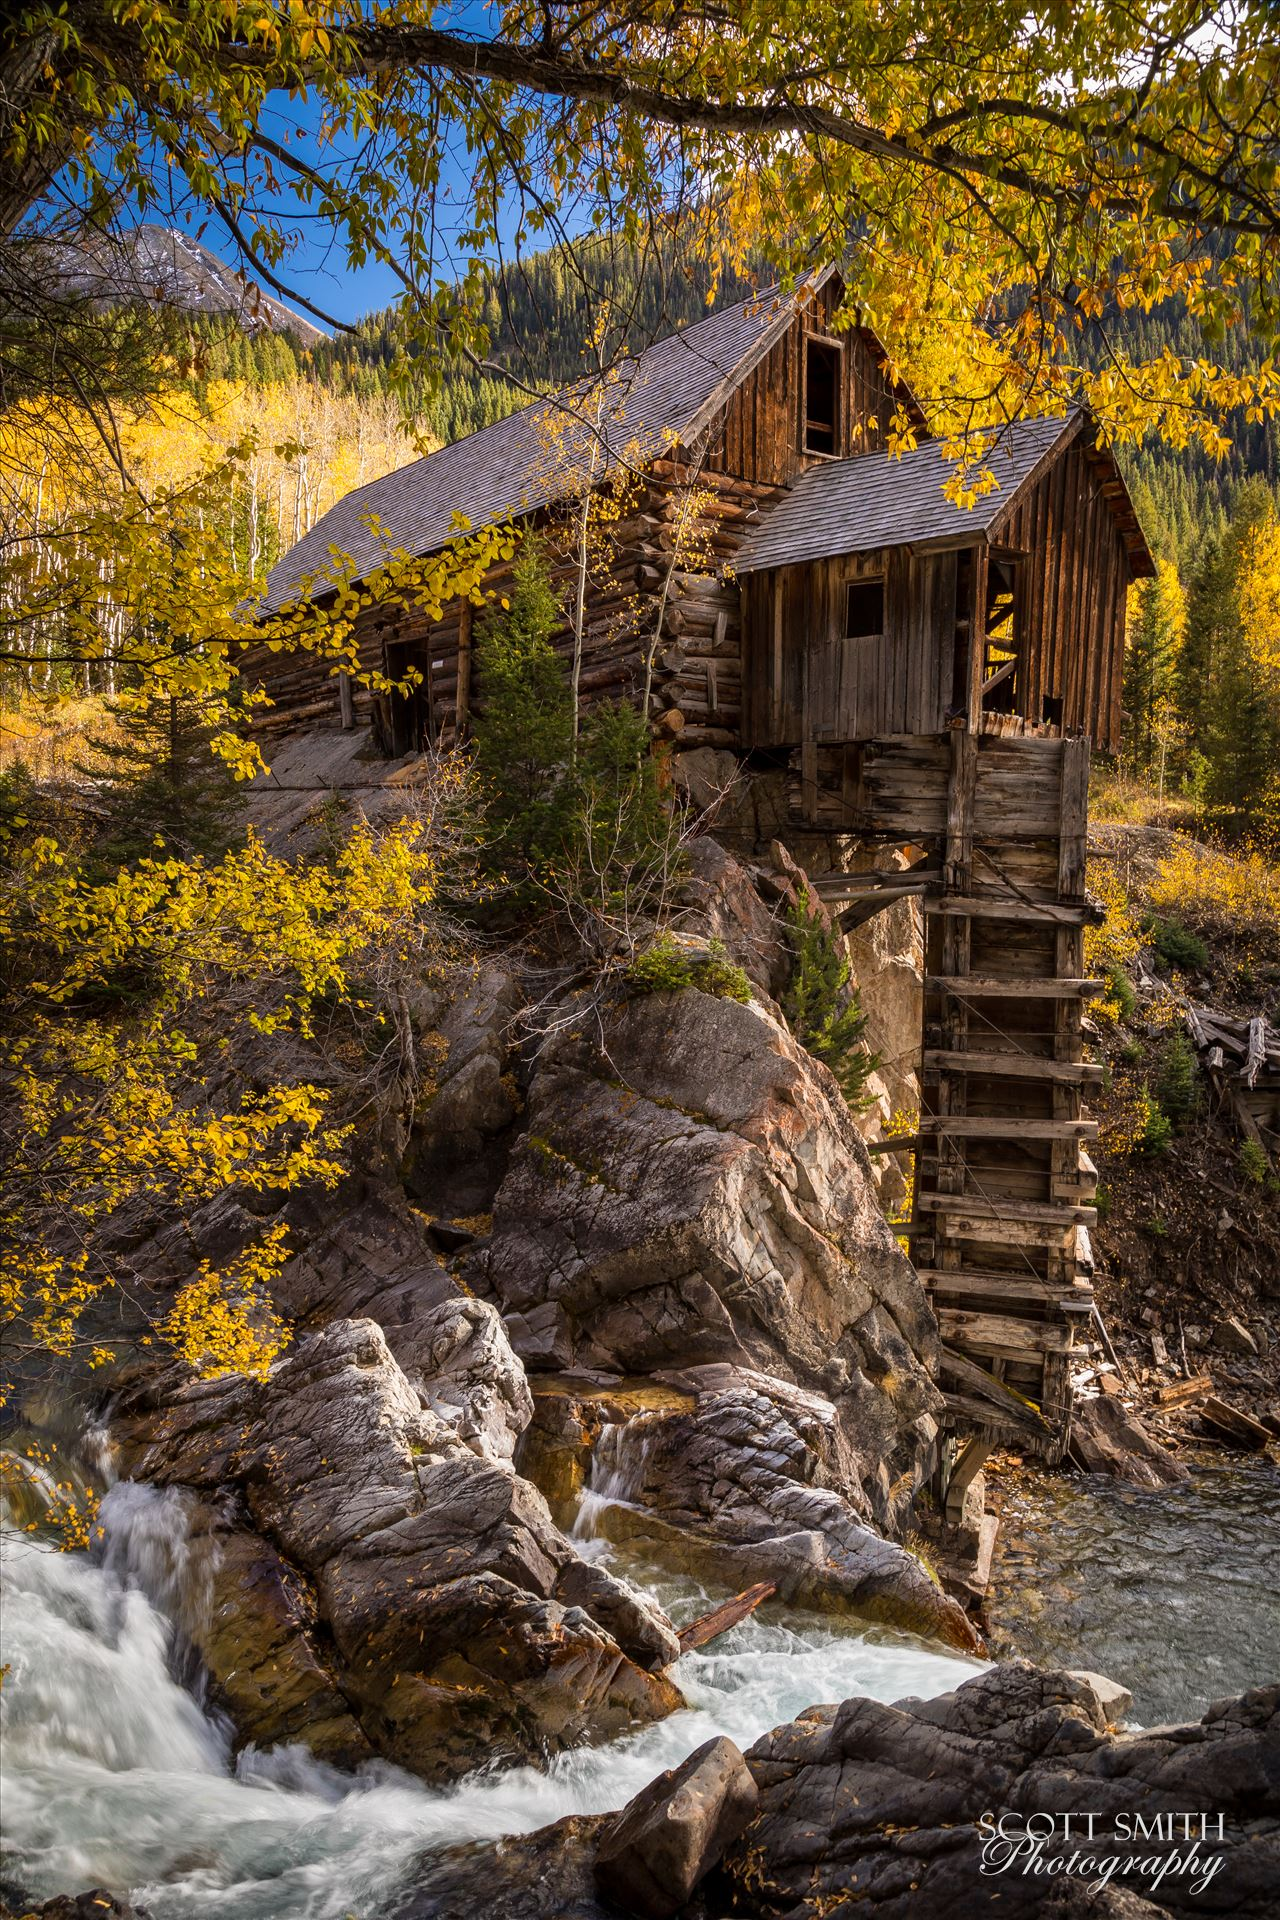 Crystal Mill No 2 - The Crystal Mill, or the Old Mill is an 1892 wooden powerhouse located on an outcrop above the Crystal River in Crystal, Colorado by D Scott Smith